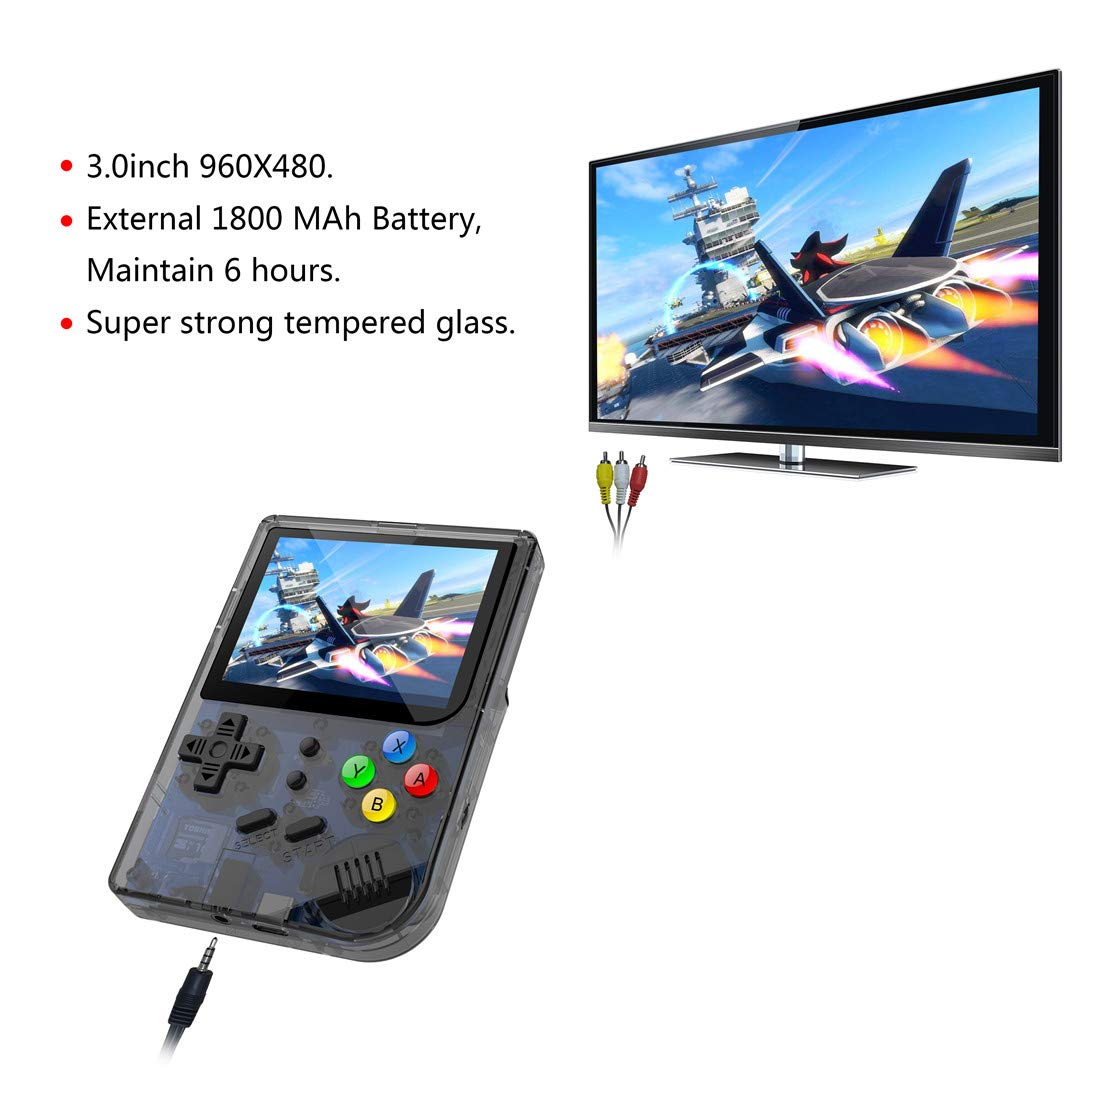 3 INCH Video Games Portable Retro FC Console New BittBoy Retro Game Handheld Games Console Player RG 300 16G 3000 Games Best Gift (Black) by Neutral (Image #5)